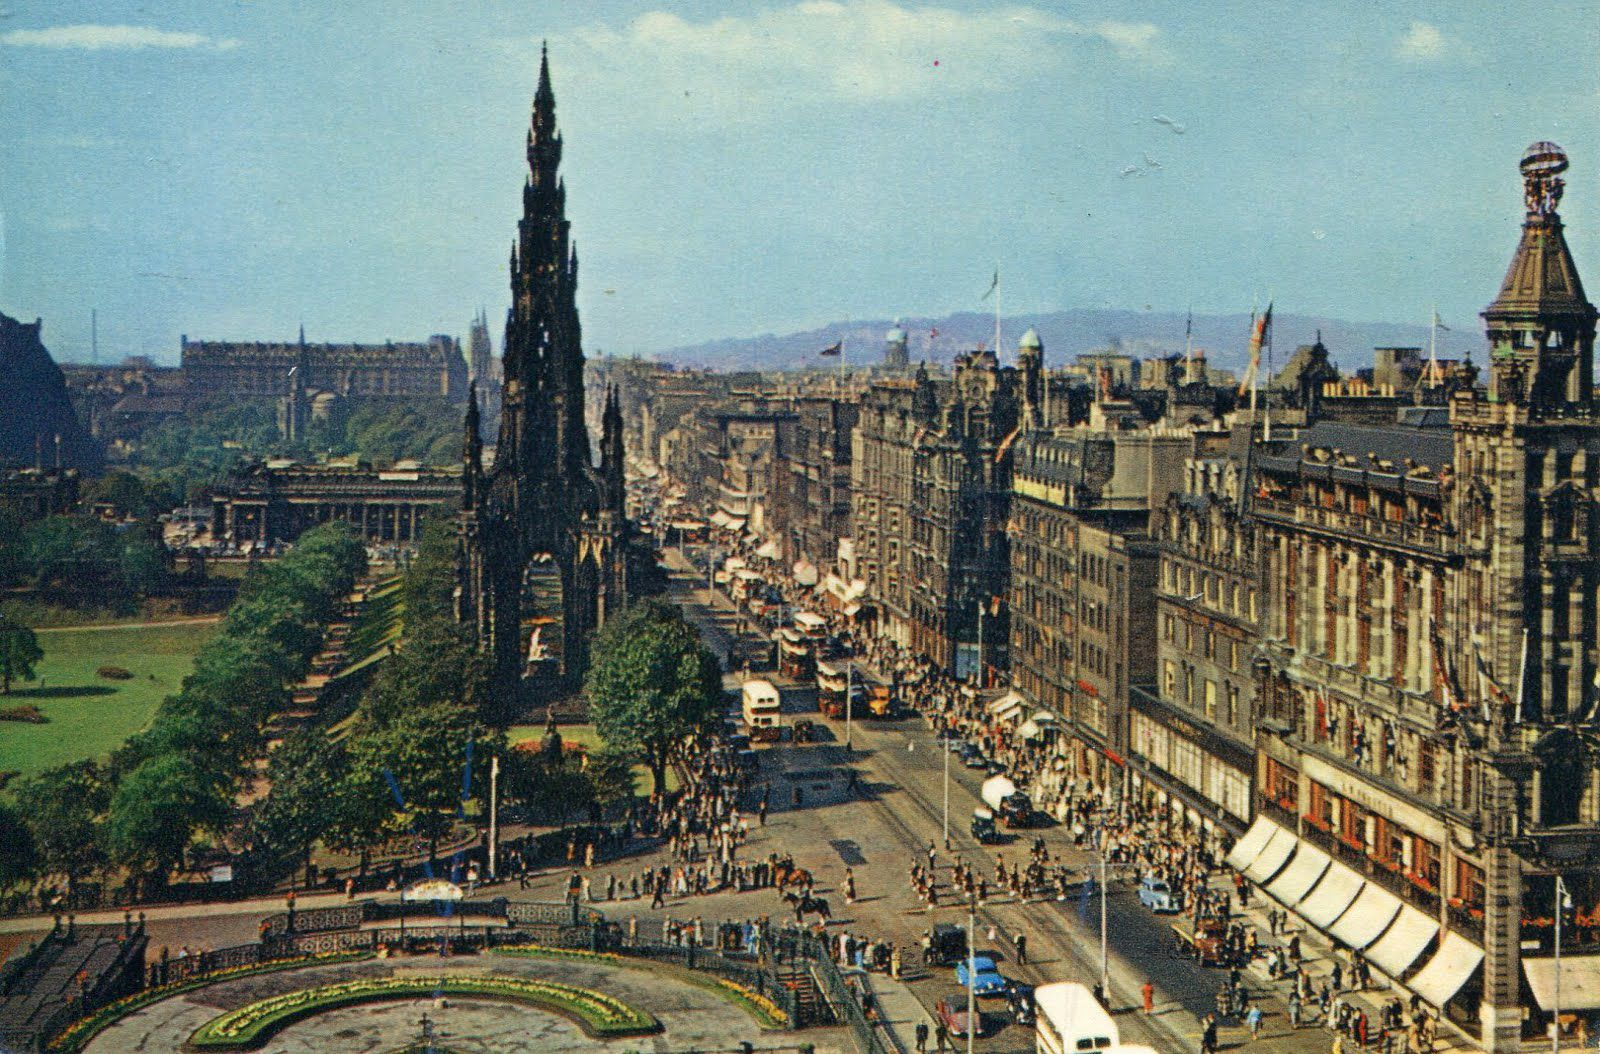 the castle, and Scott Monument